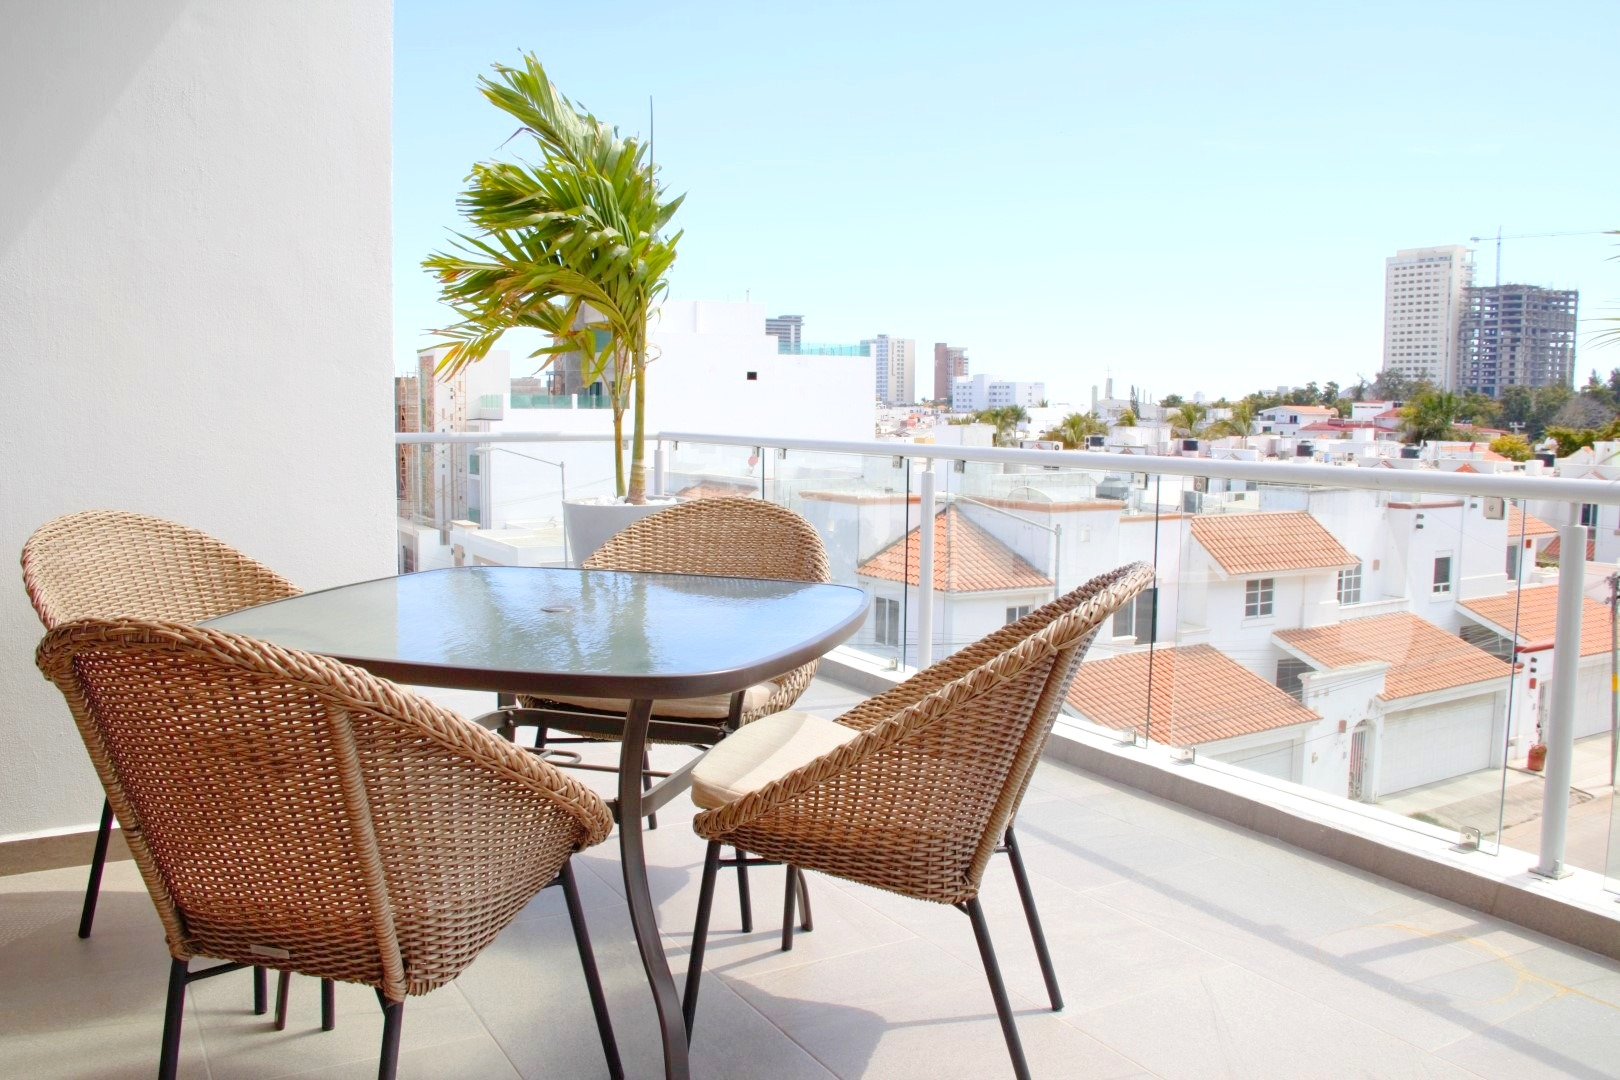 Outdoor dining on private terrace.